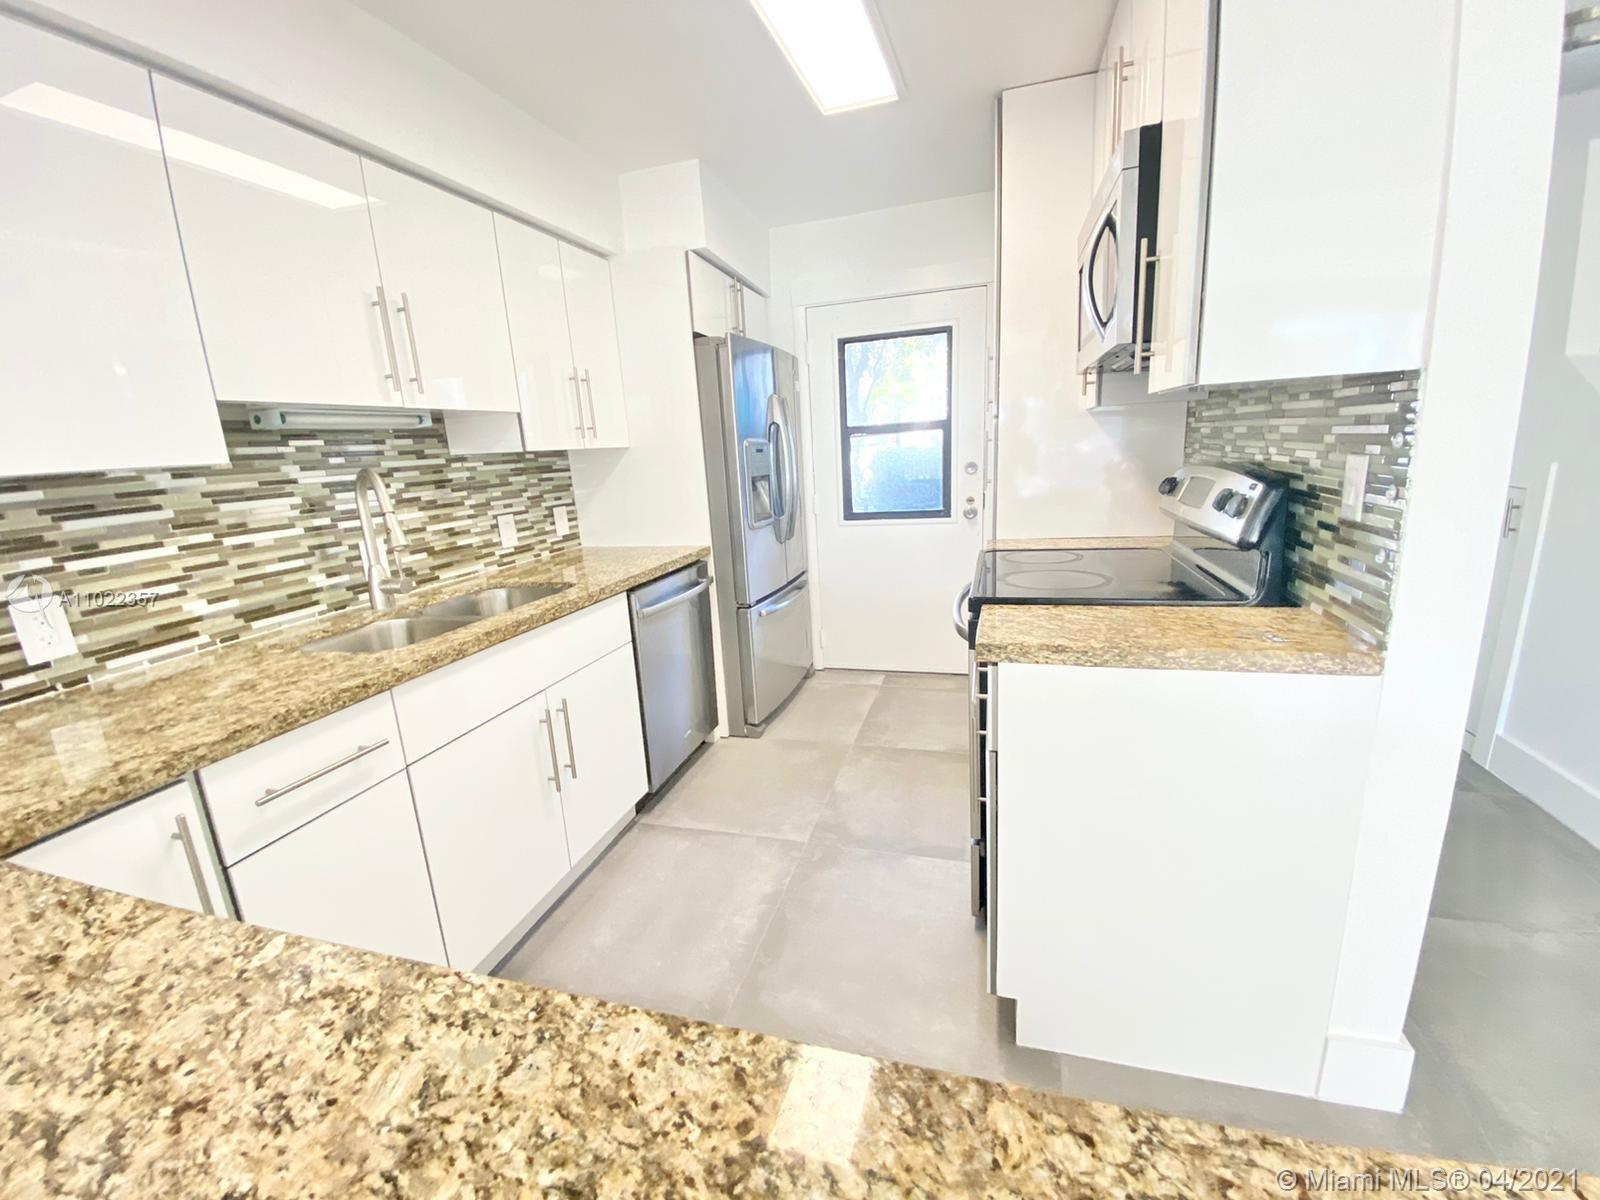 MUST SEE, Beautiful 3beds/3baths Totally Renovated unit rarely available on the Aventura Circle, Tot